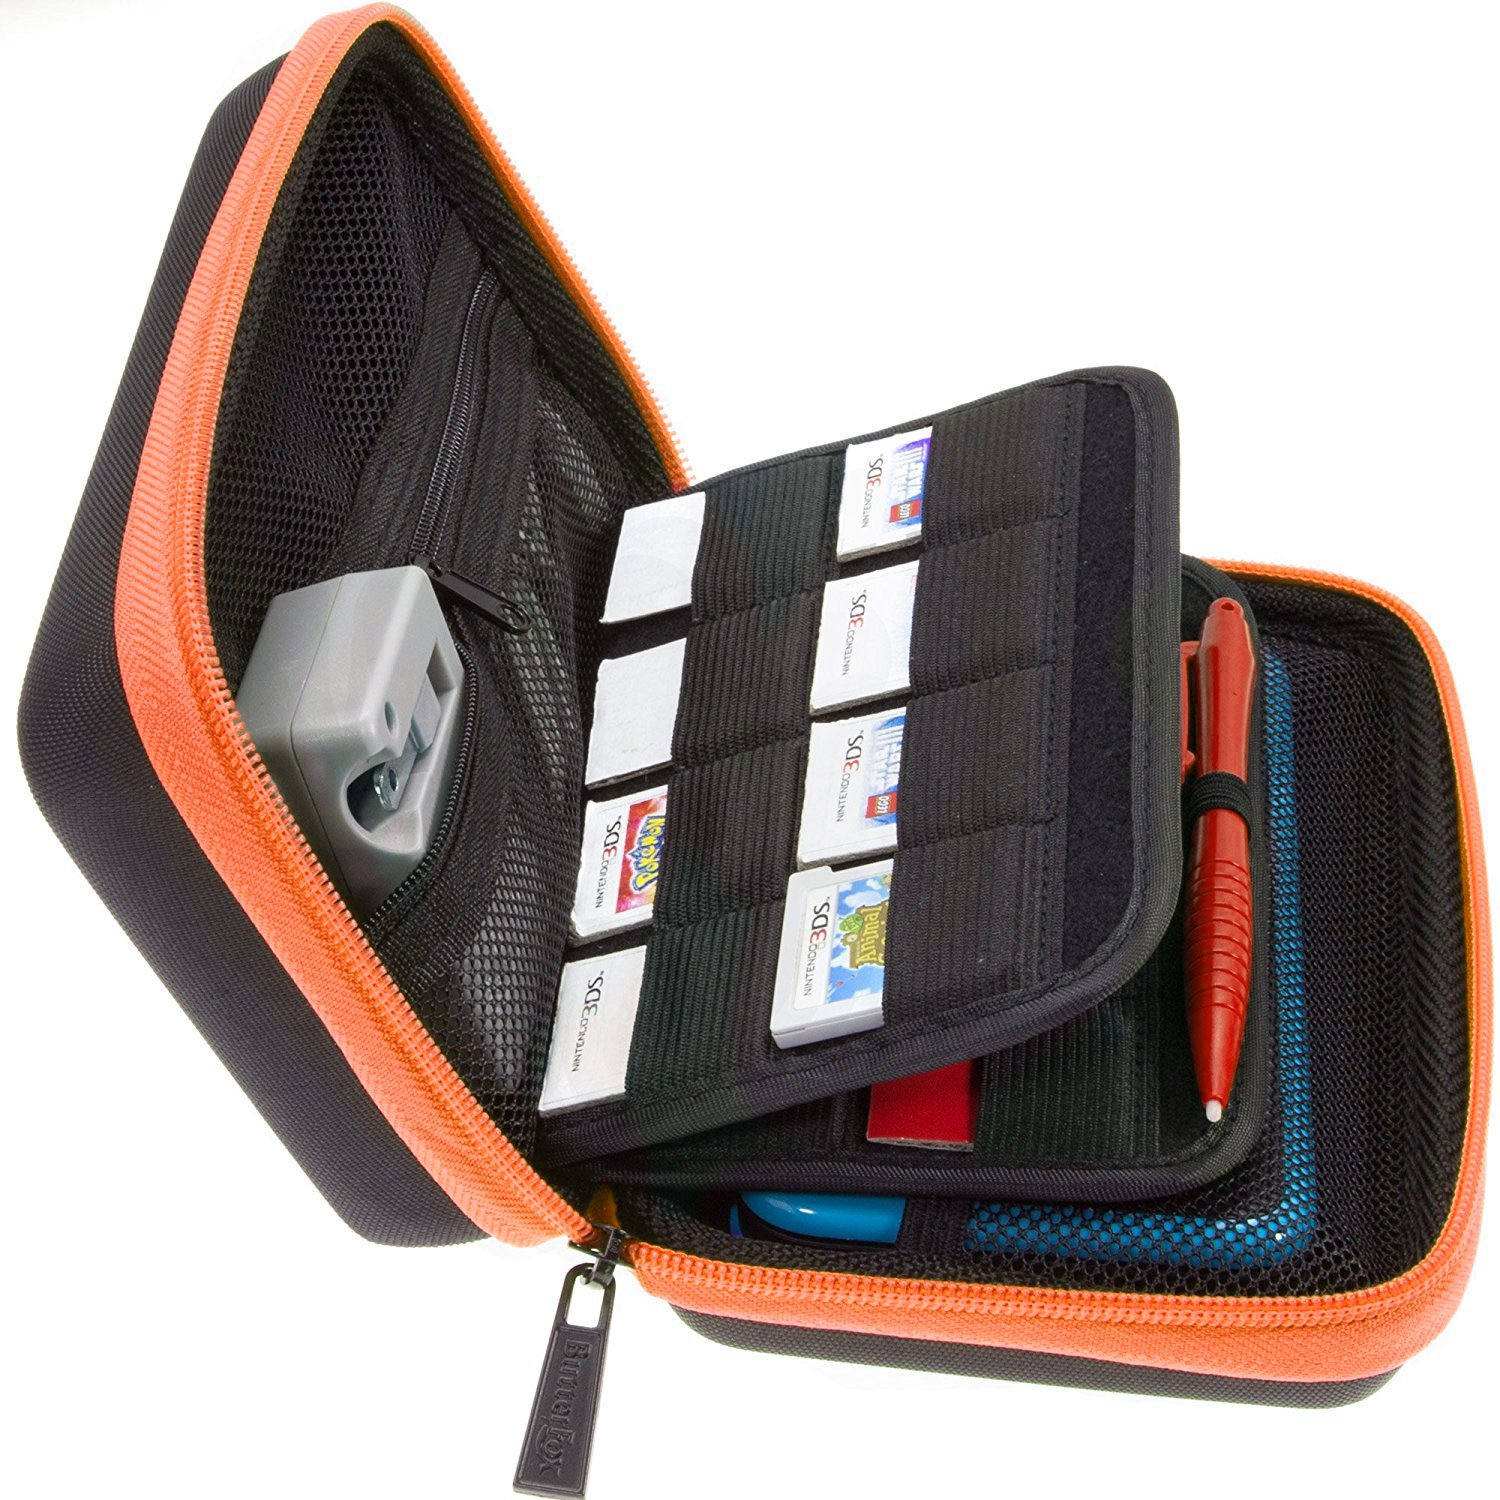 BRENDO Carrying Case for New Nintendo 2DS XL, Includes Large Stylus, Fits Wall Charger, 24 Game Cartridge Case Holder, Large Accessories Pocket - Black/Orange by Butterfox (Image #1)